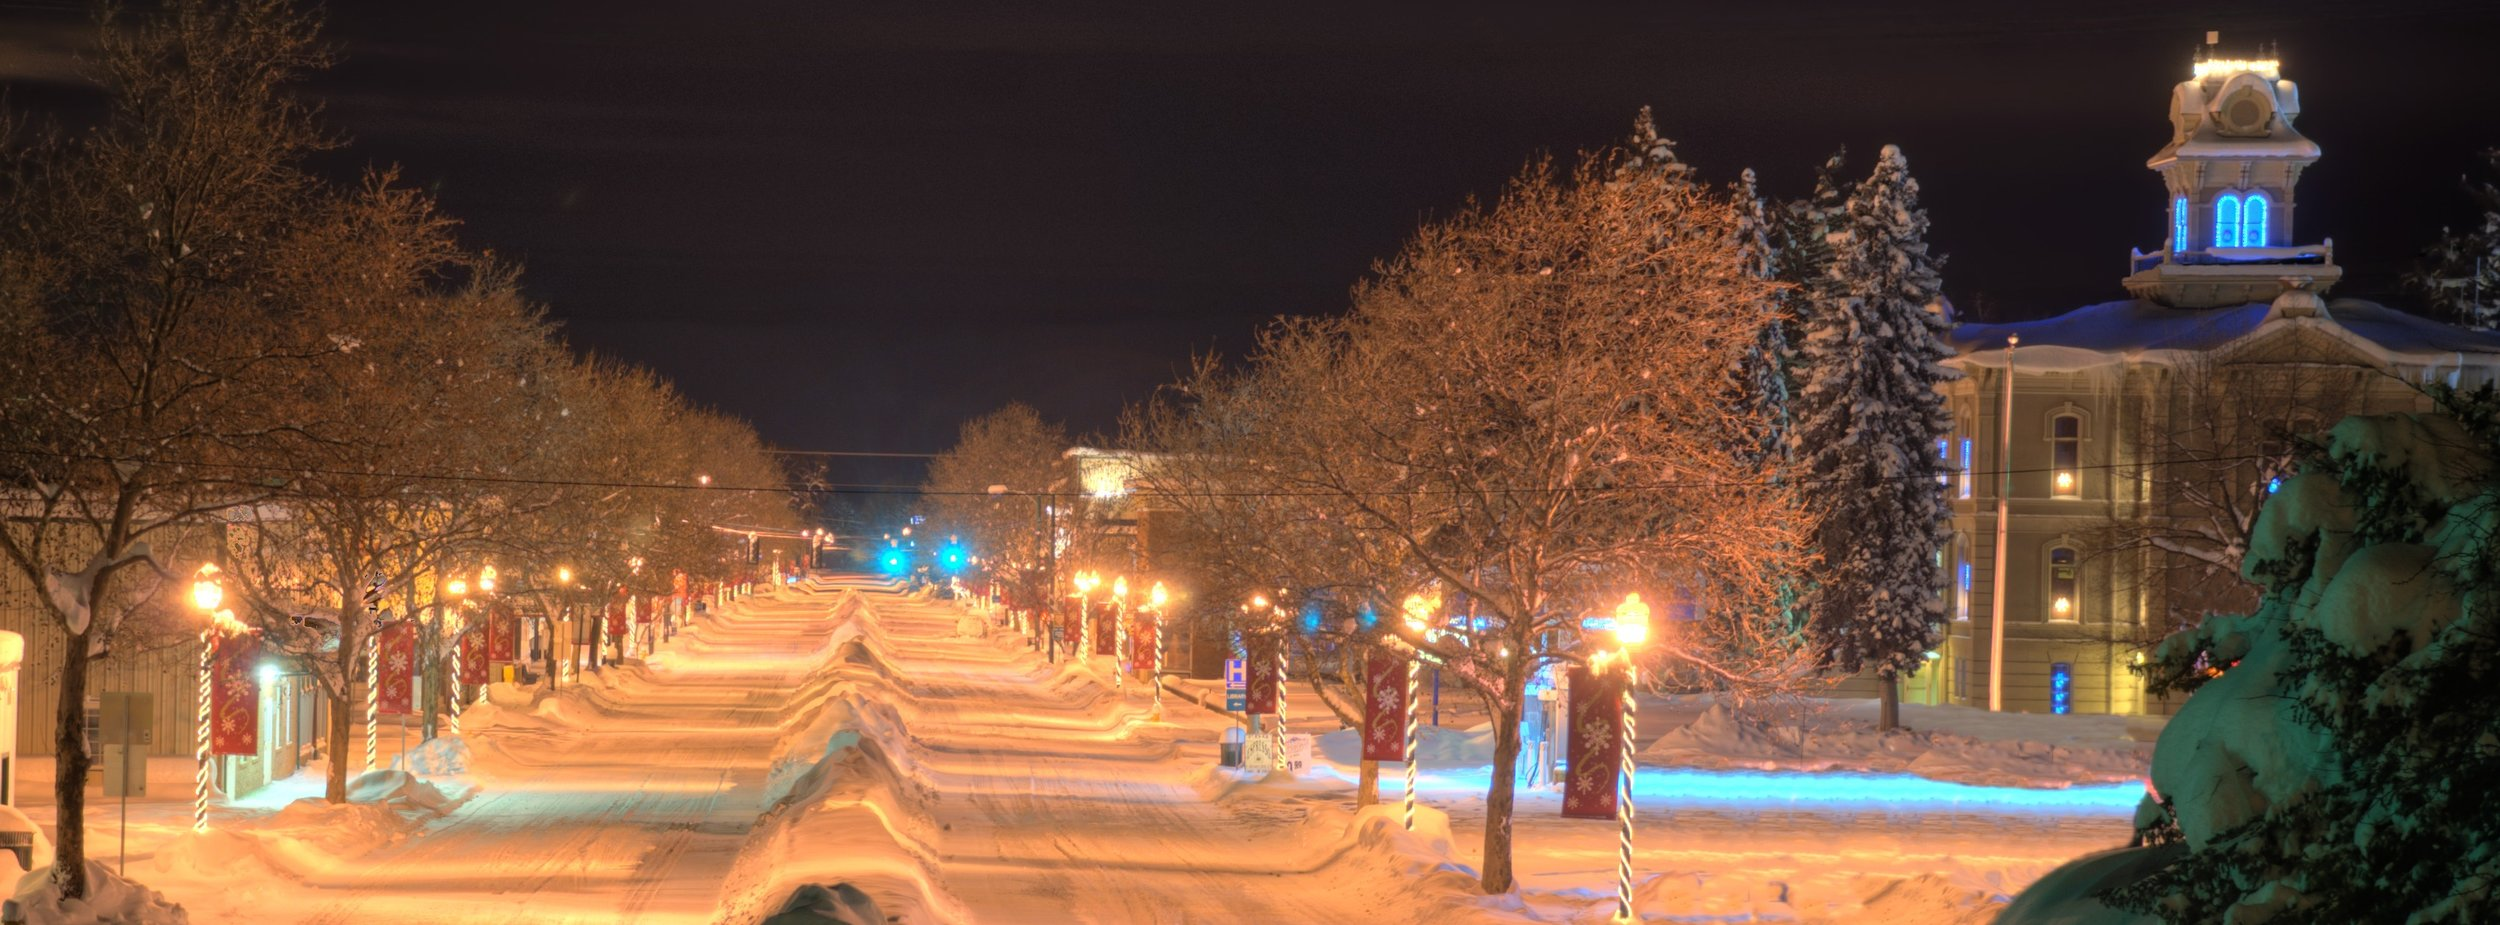 Dayton night snow 01.jpg